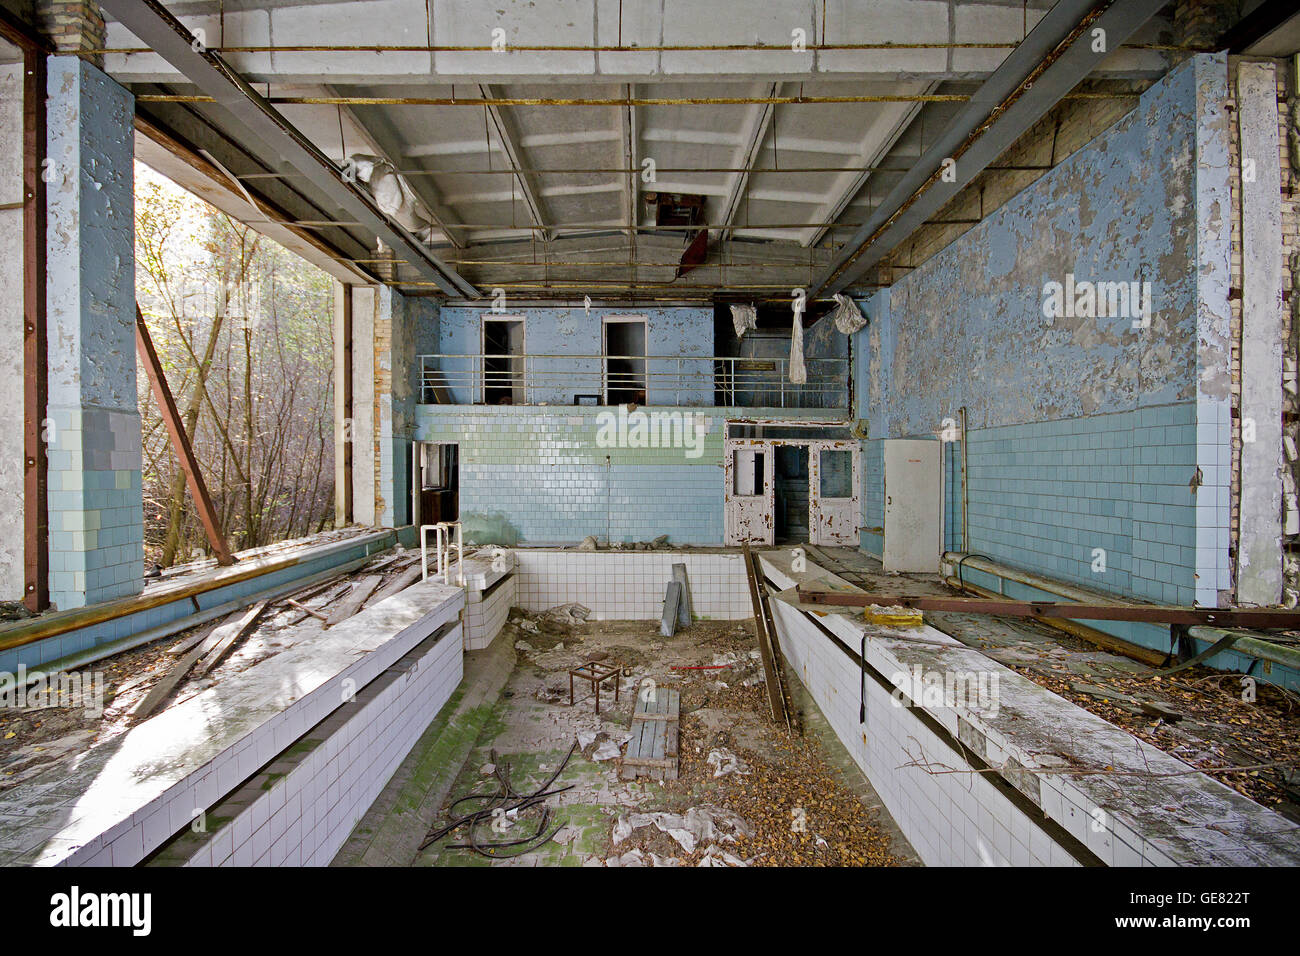 Swimming pool in the abandoned town of Pripyat, Chernobyl exclusion zone, Ukraine. Stock Photo